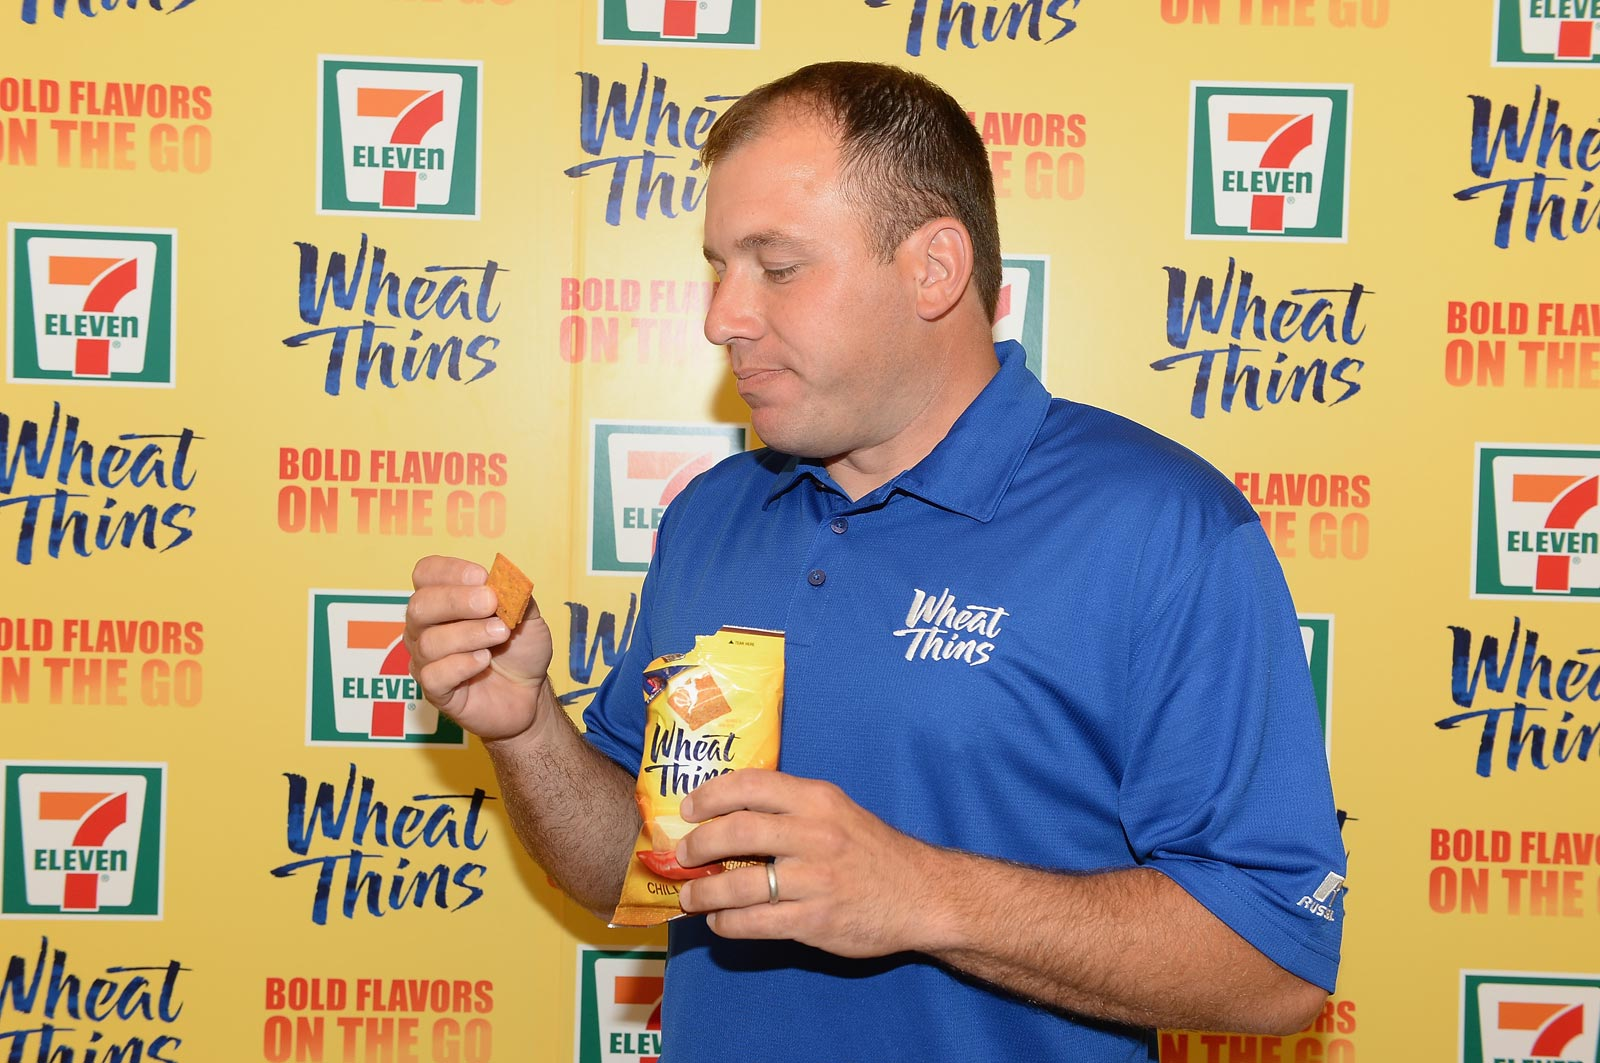 ryan-newman-wheat-thins-04